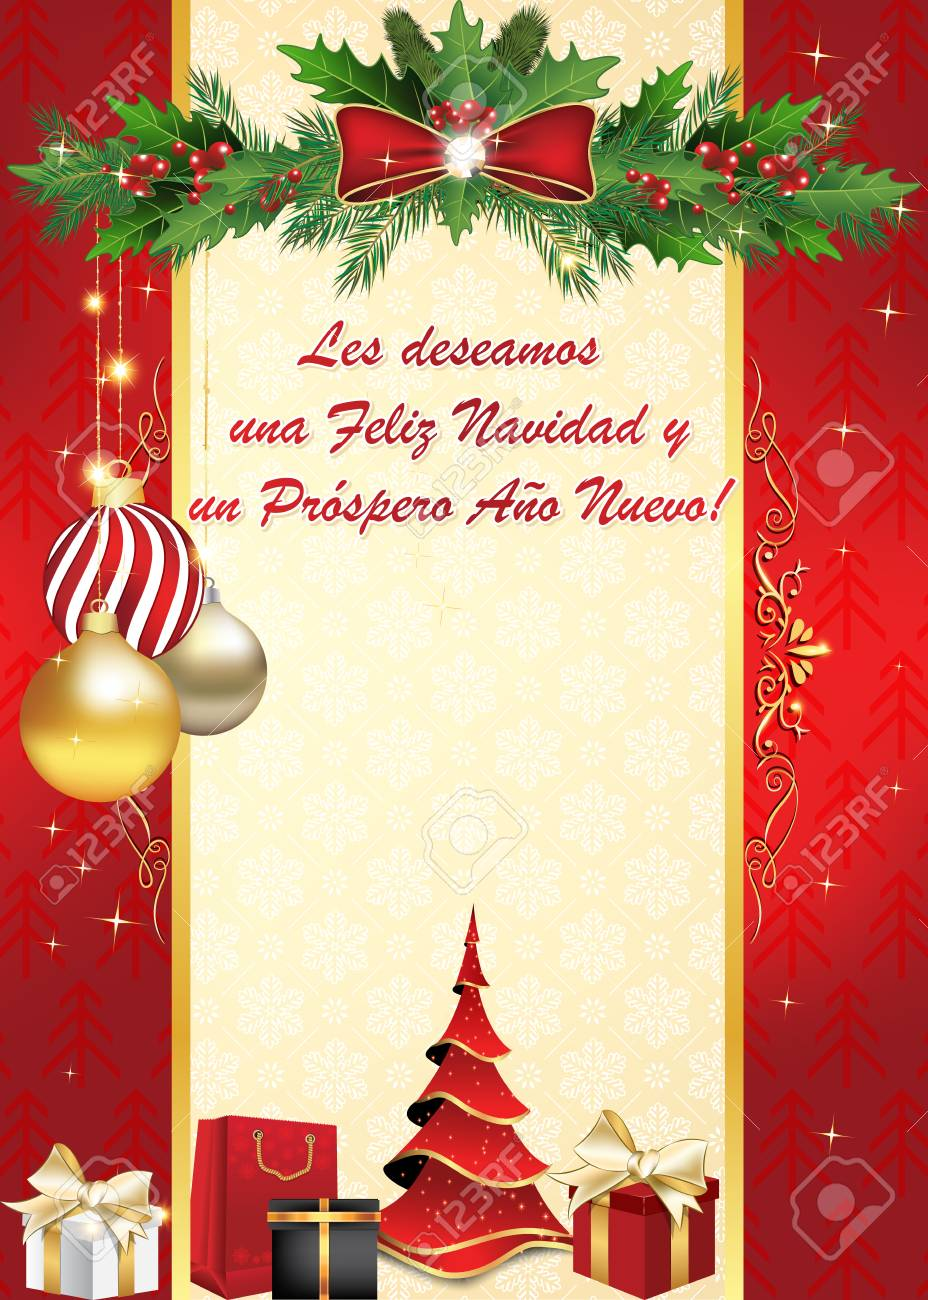 Merry Xmas Poems, Qoutes, Messages In Spanish